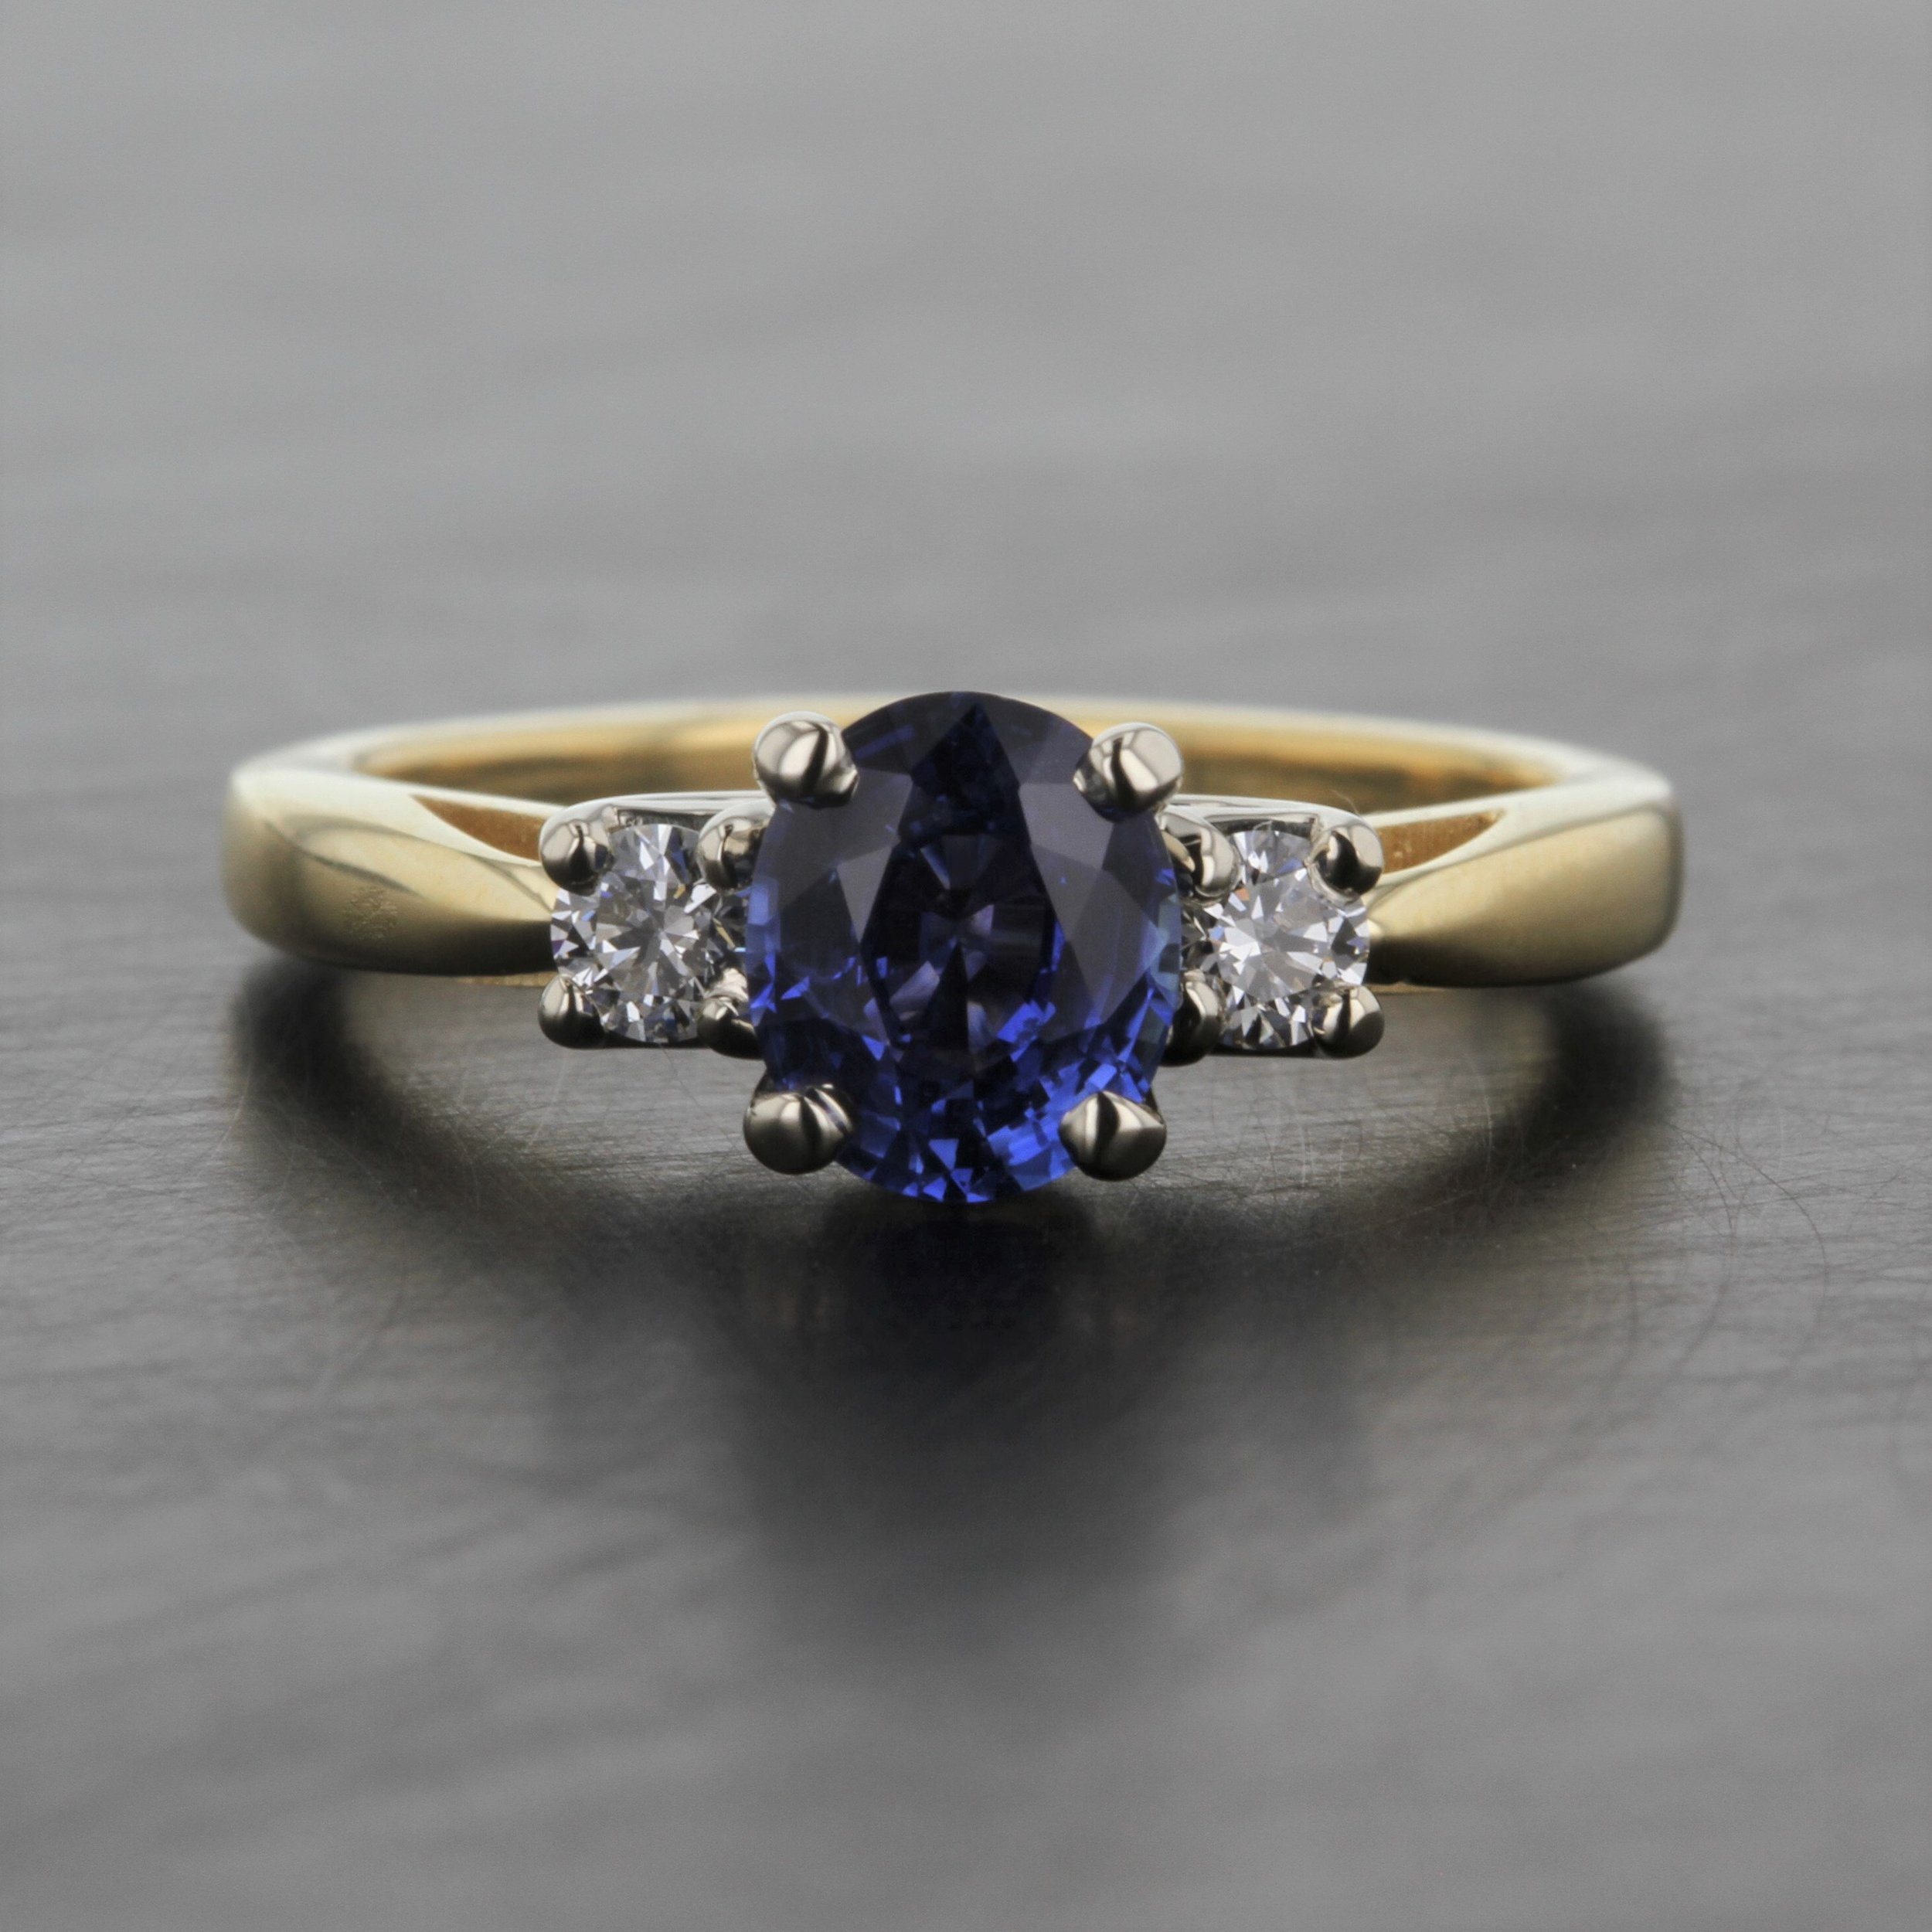 oval-natural-blue-sapphire-three-stone-diamond-accent-18K-yellow-gold-custom-ring.jpg